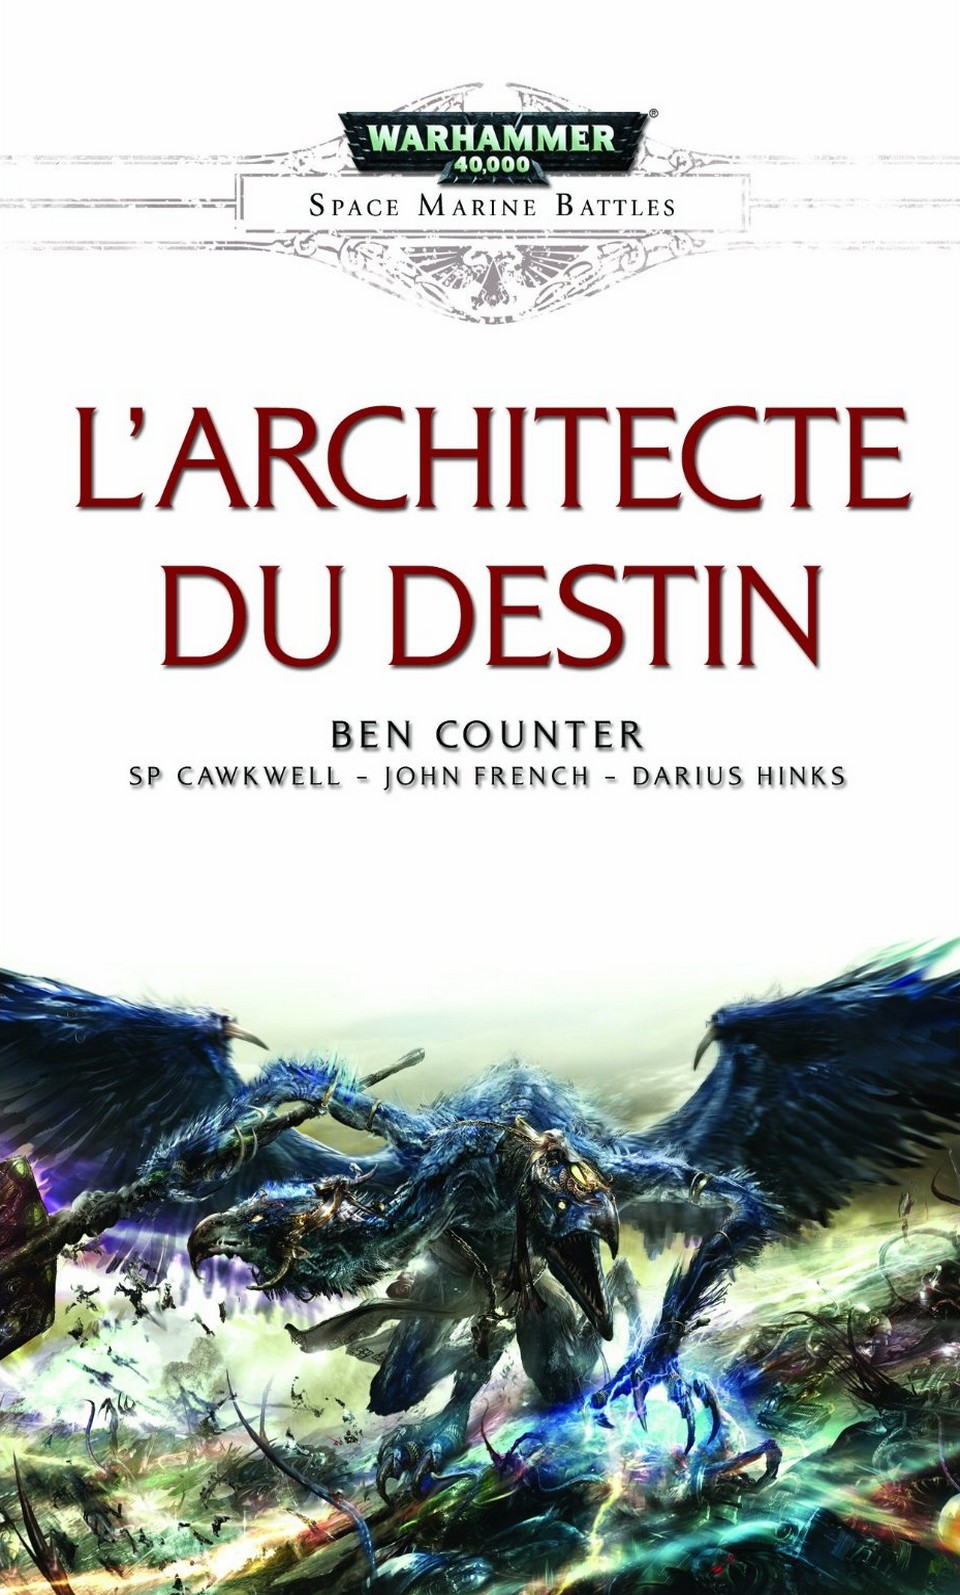 Programme des publications Black Library France pour 2013 - Page 9 883758LArchitectedudestin